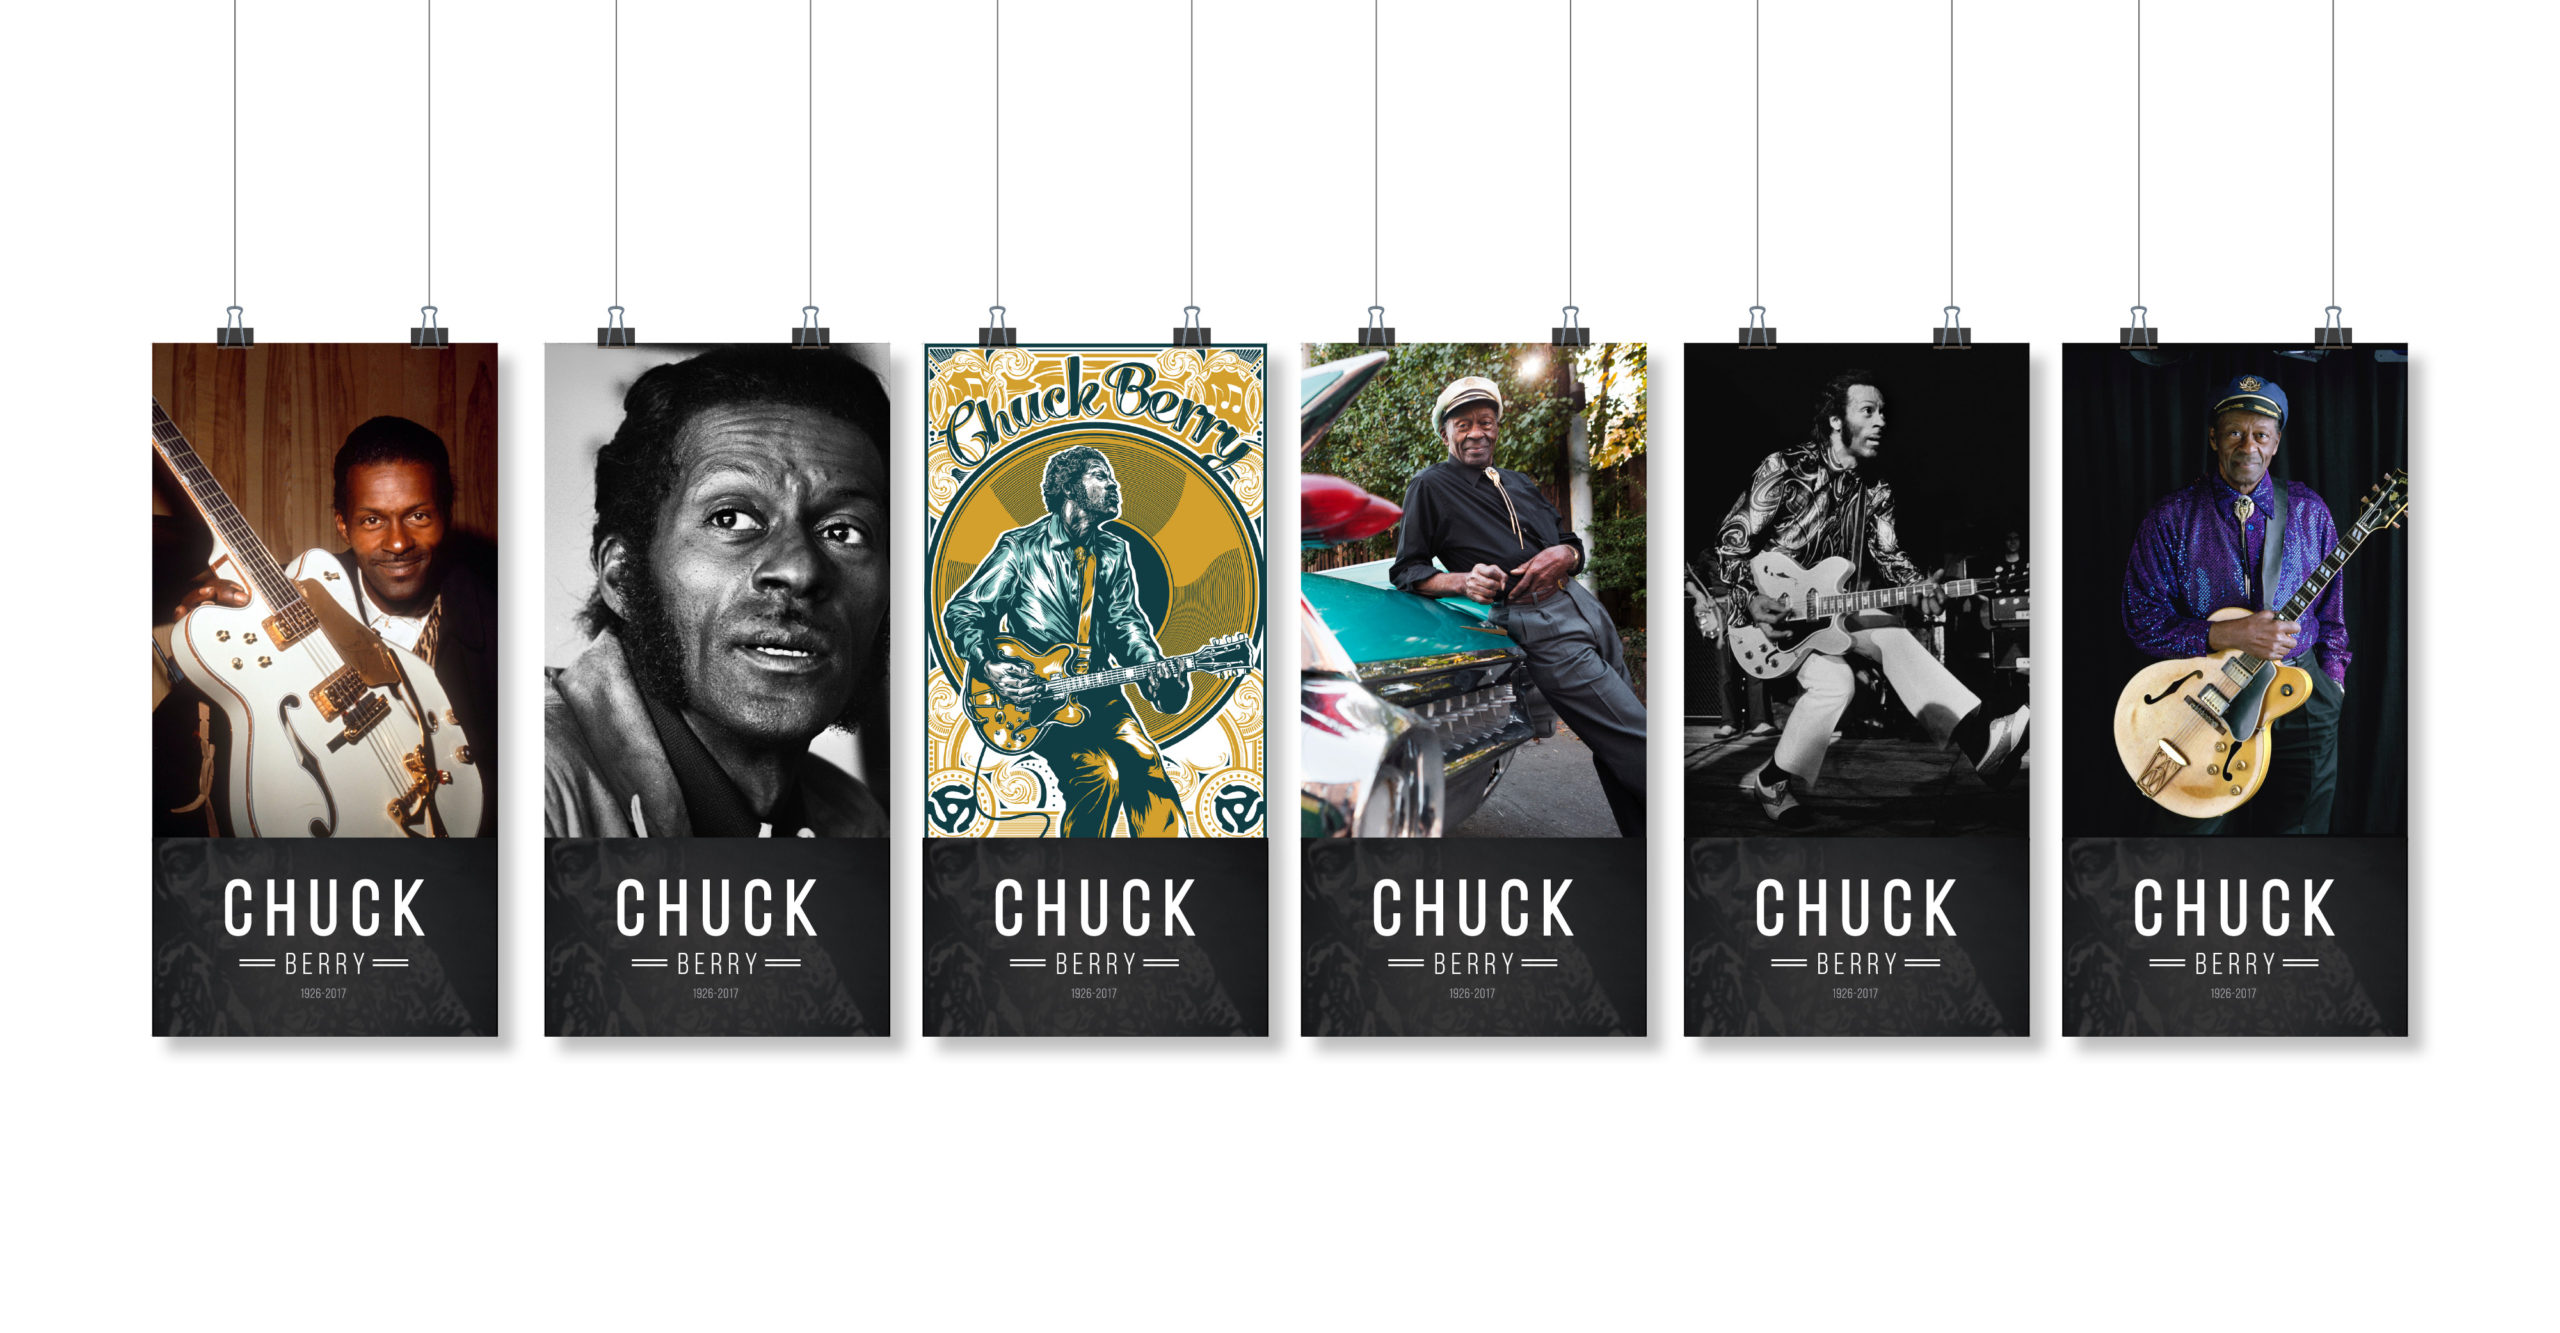 ChuckBerry_posters